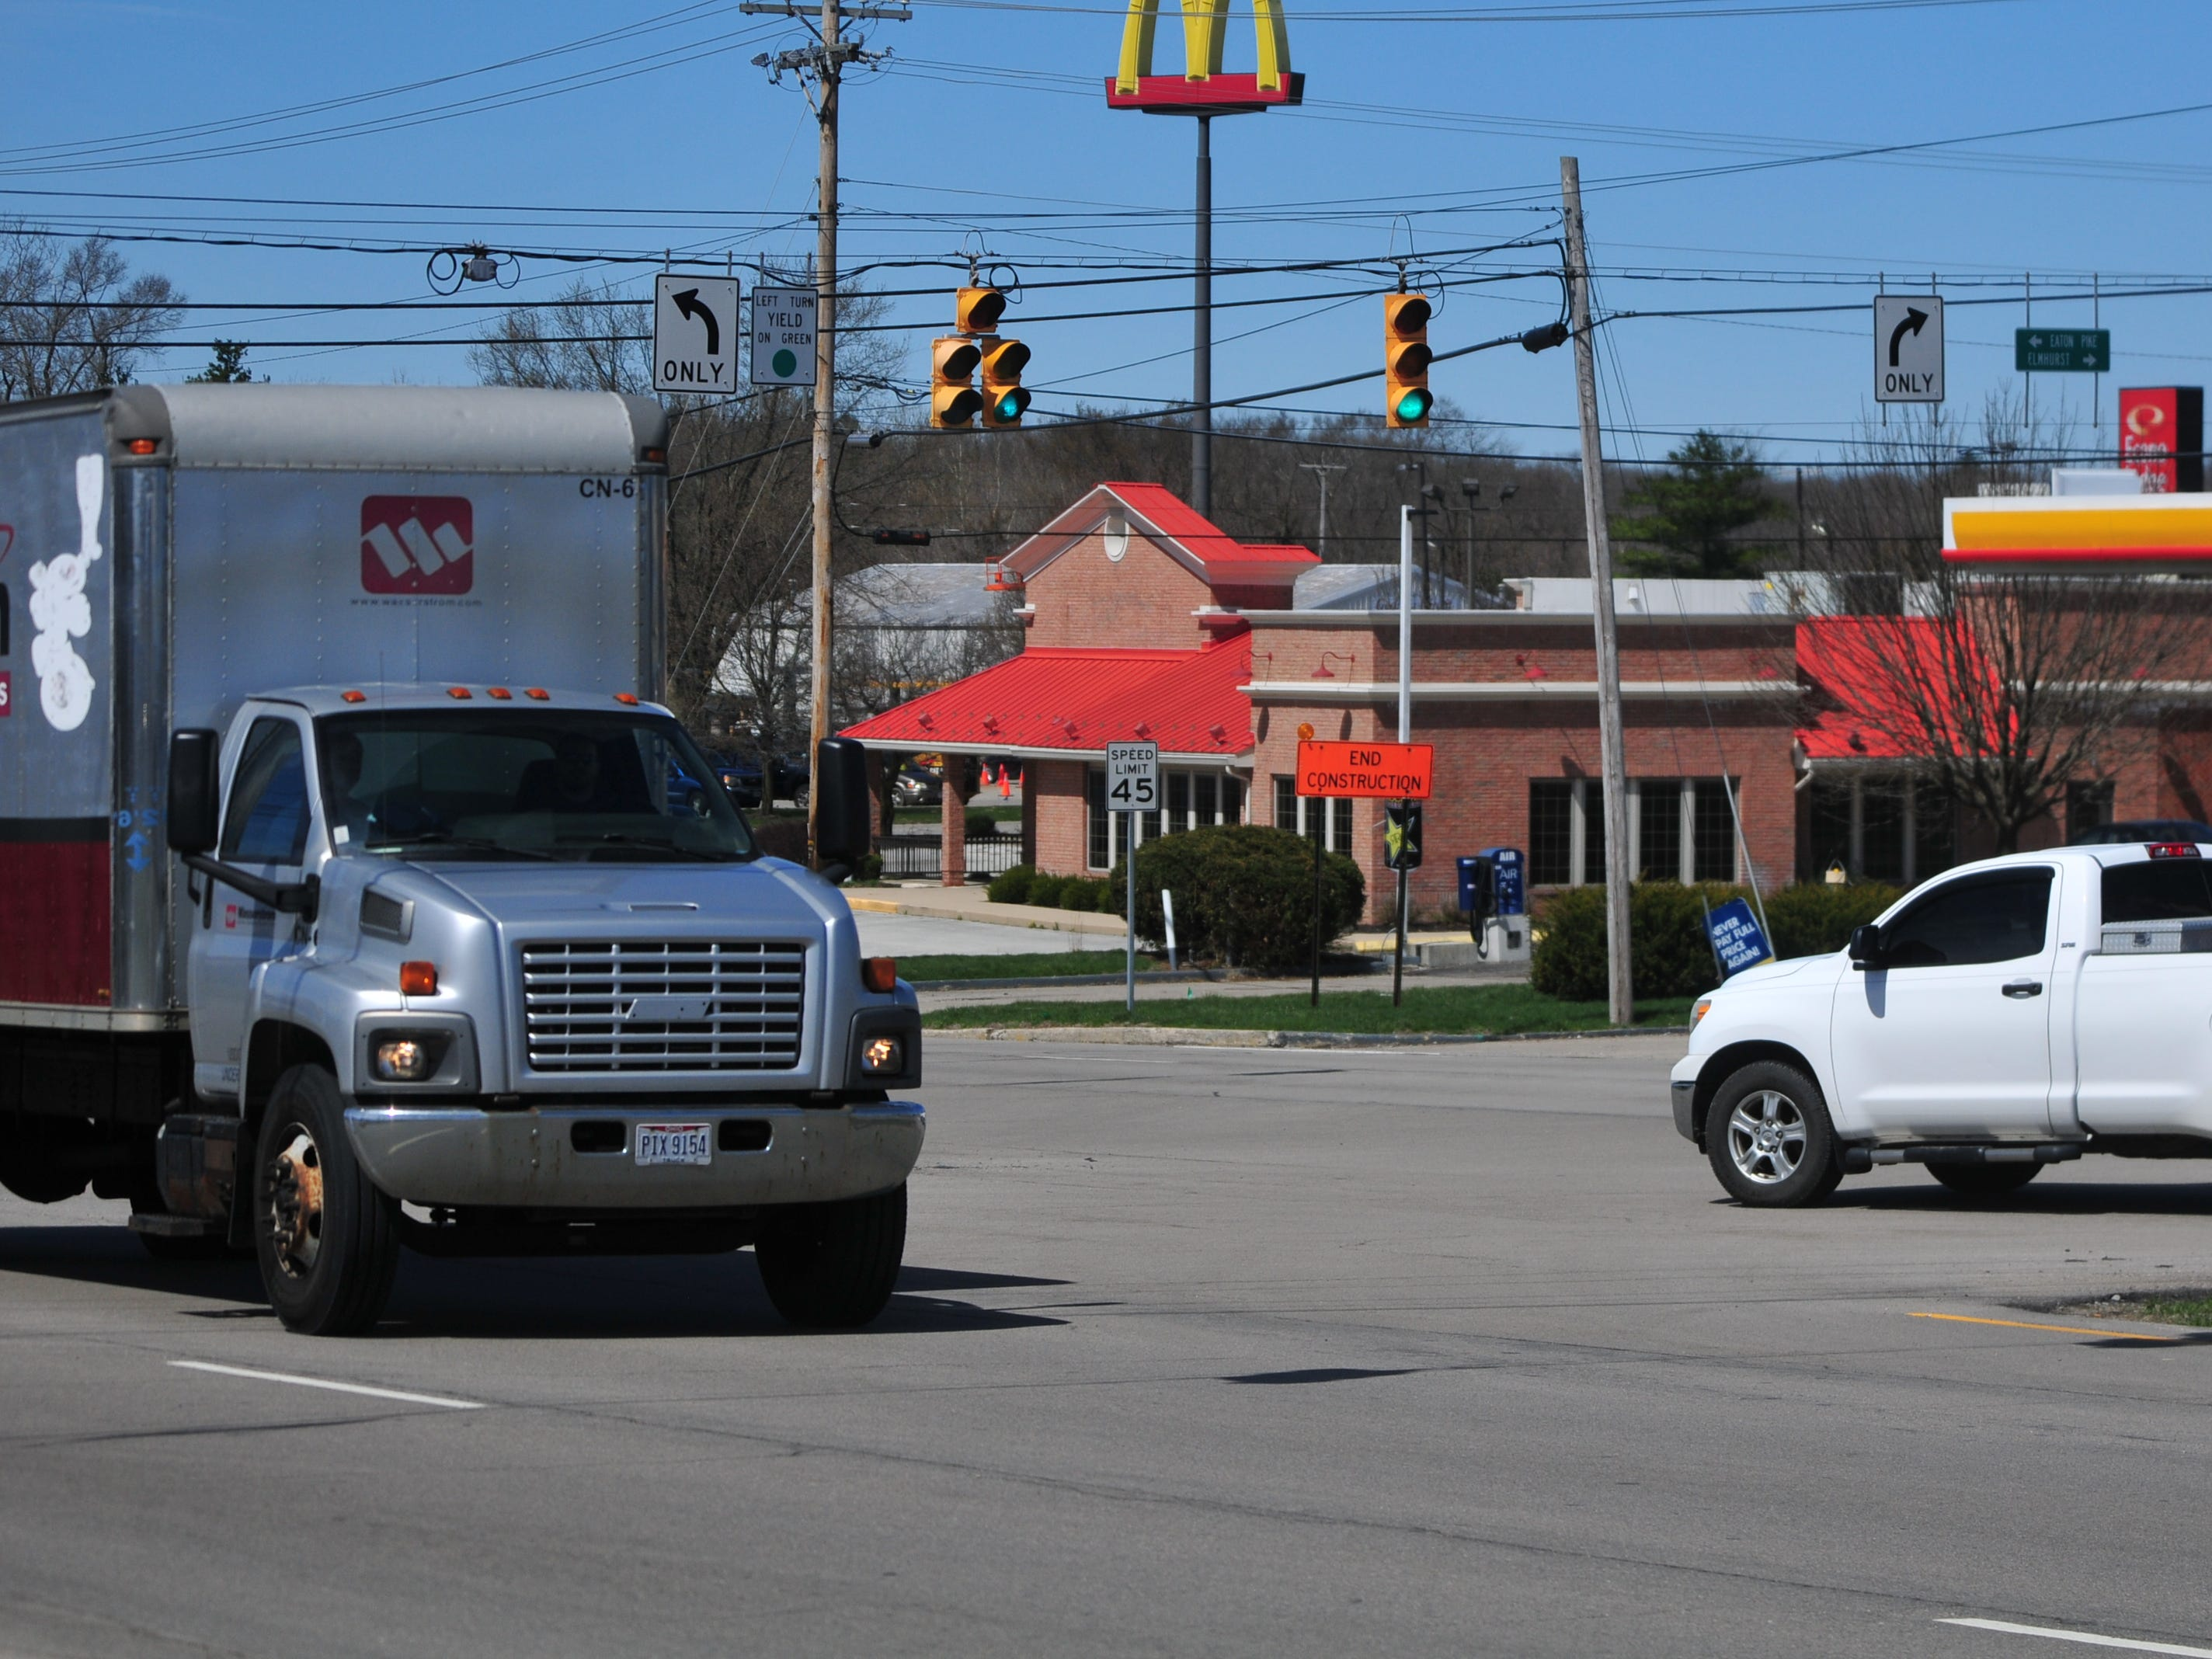 Richmond Police Department reported 13 accidents during 2018 at the intersection of National Road East and West Eaton Pike/Elmhurst Drive.